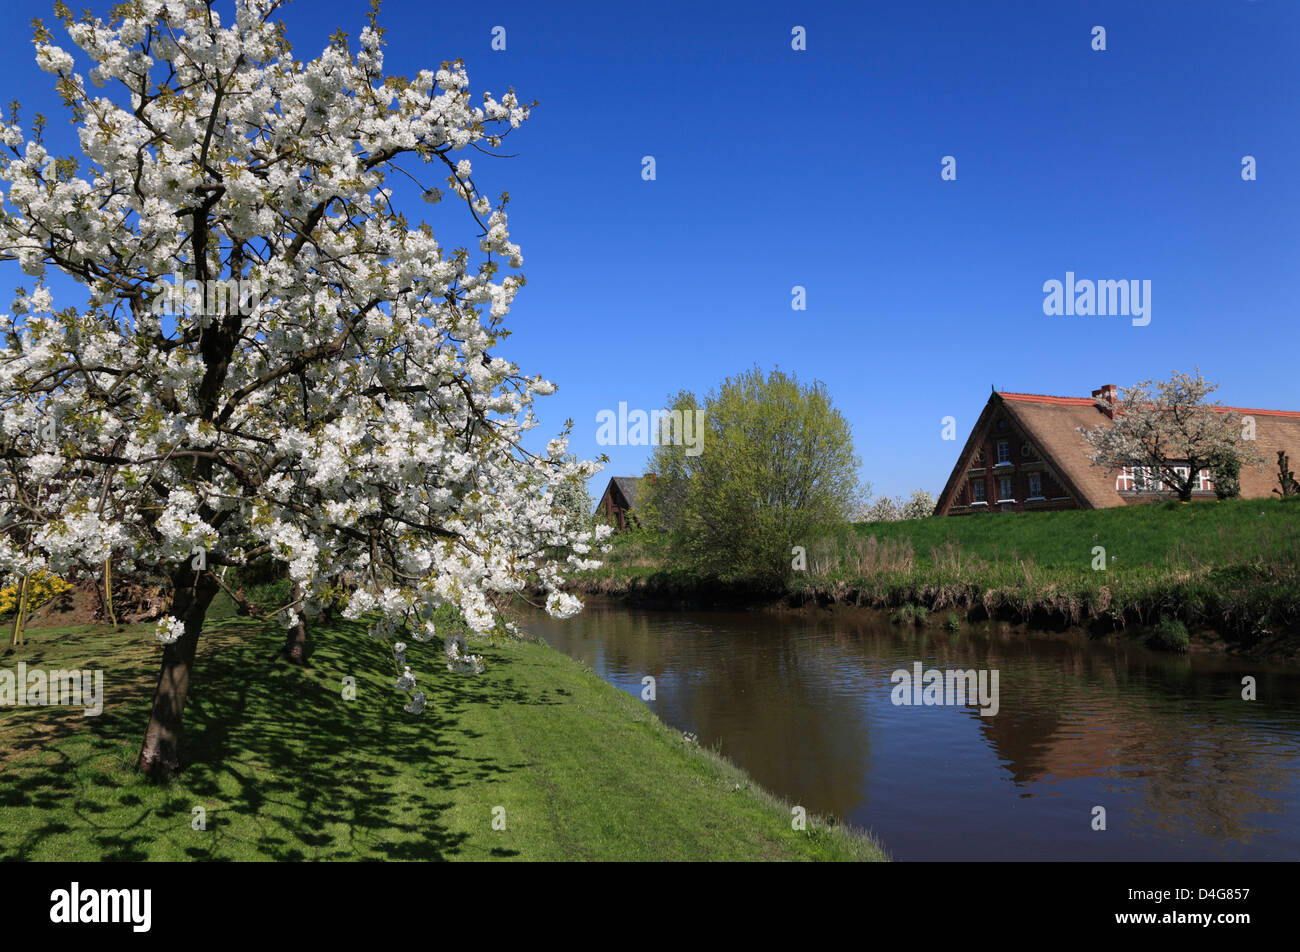 Altes Land, river Luehe, Lower Saxony, Germany - Stock Image